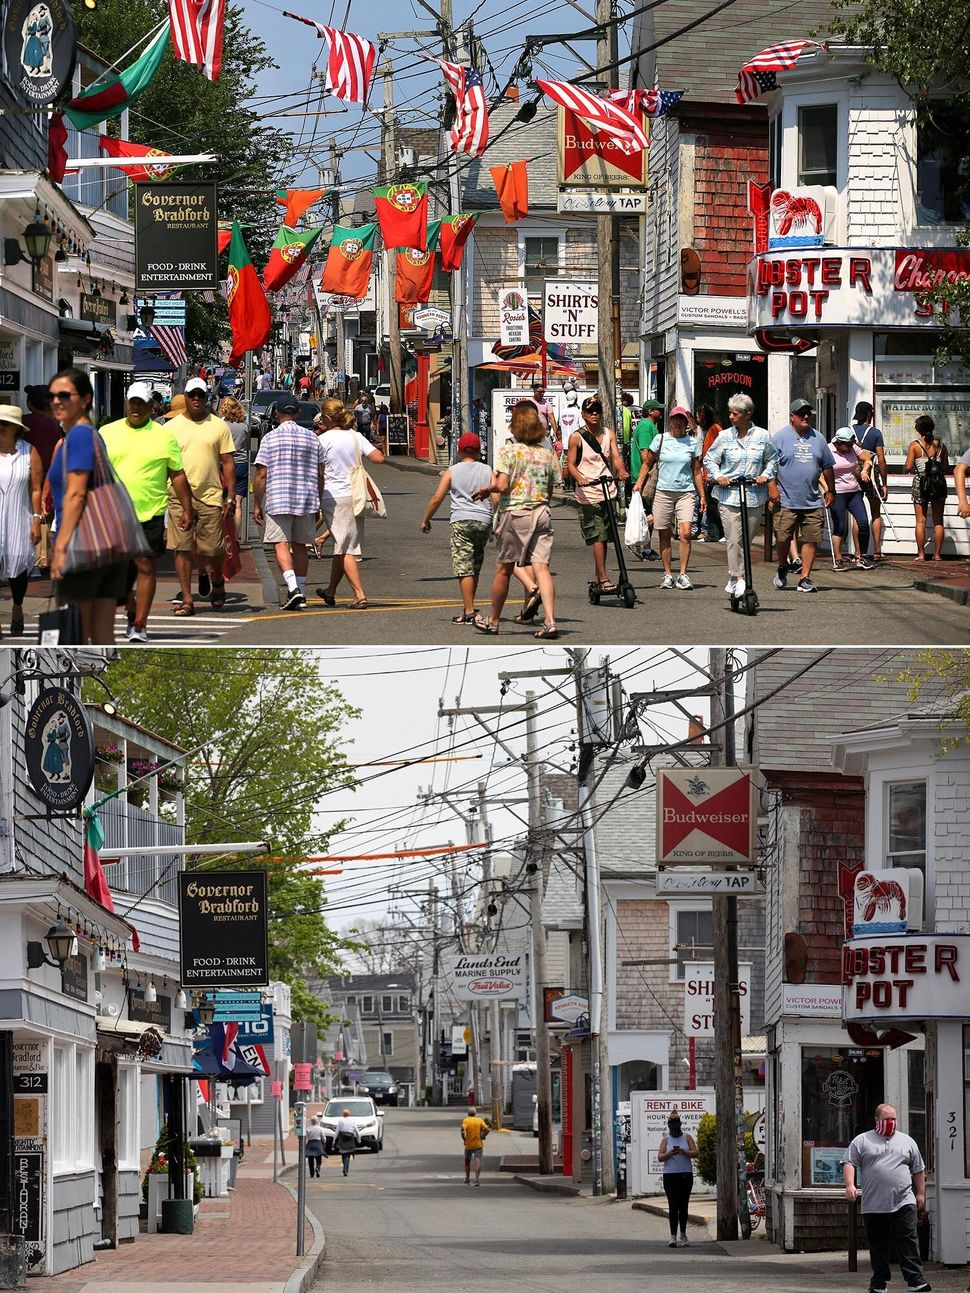 <strong>Top image:</strong>&nbsp;Crowds fill Commercial Street on July 10, 2019.&nbsp;<strong>Bottom image:</strong>&nbsp;Clo